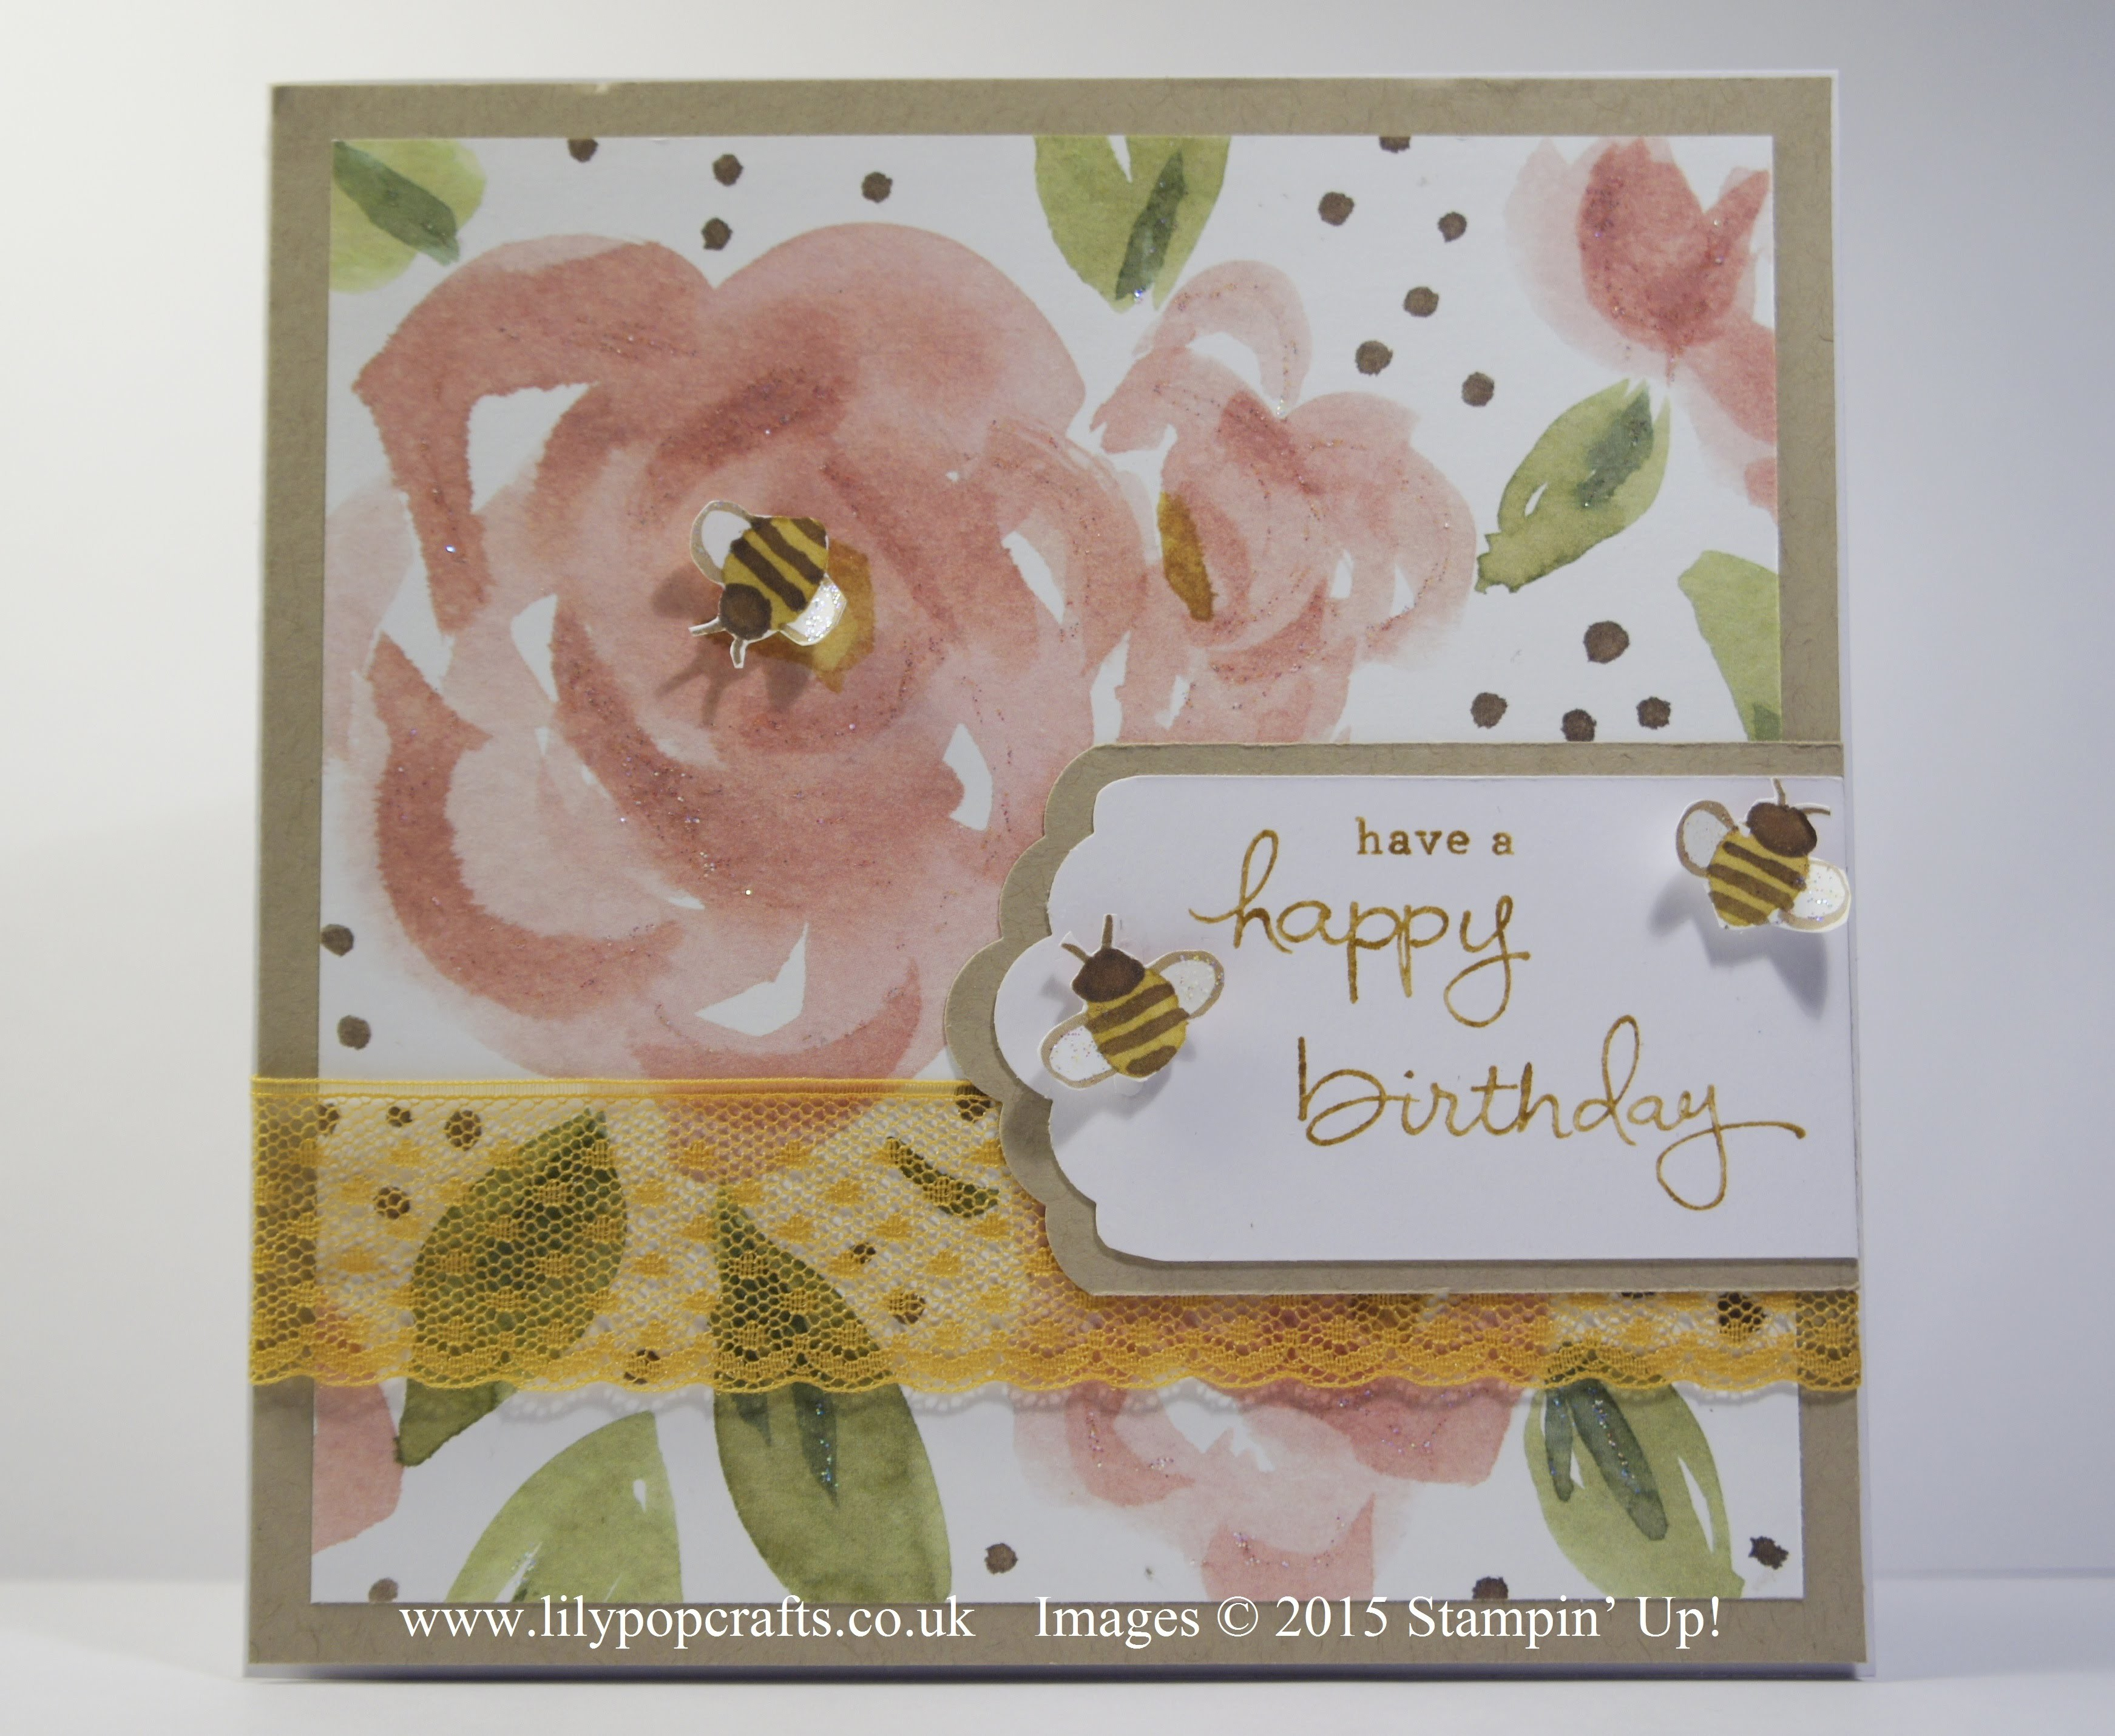 Handmade Birthday Card using English Garden & Endless Birthday Wishes by Stampin' Up!